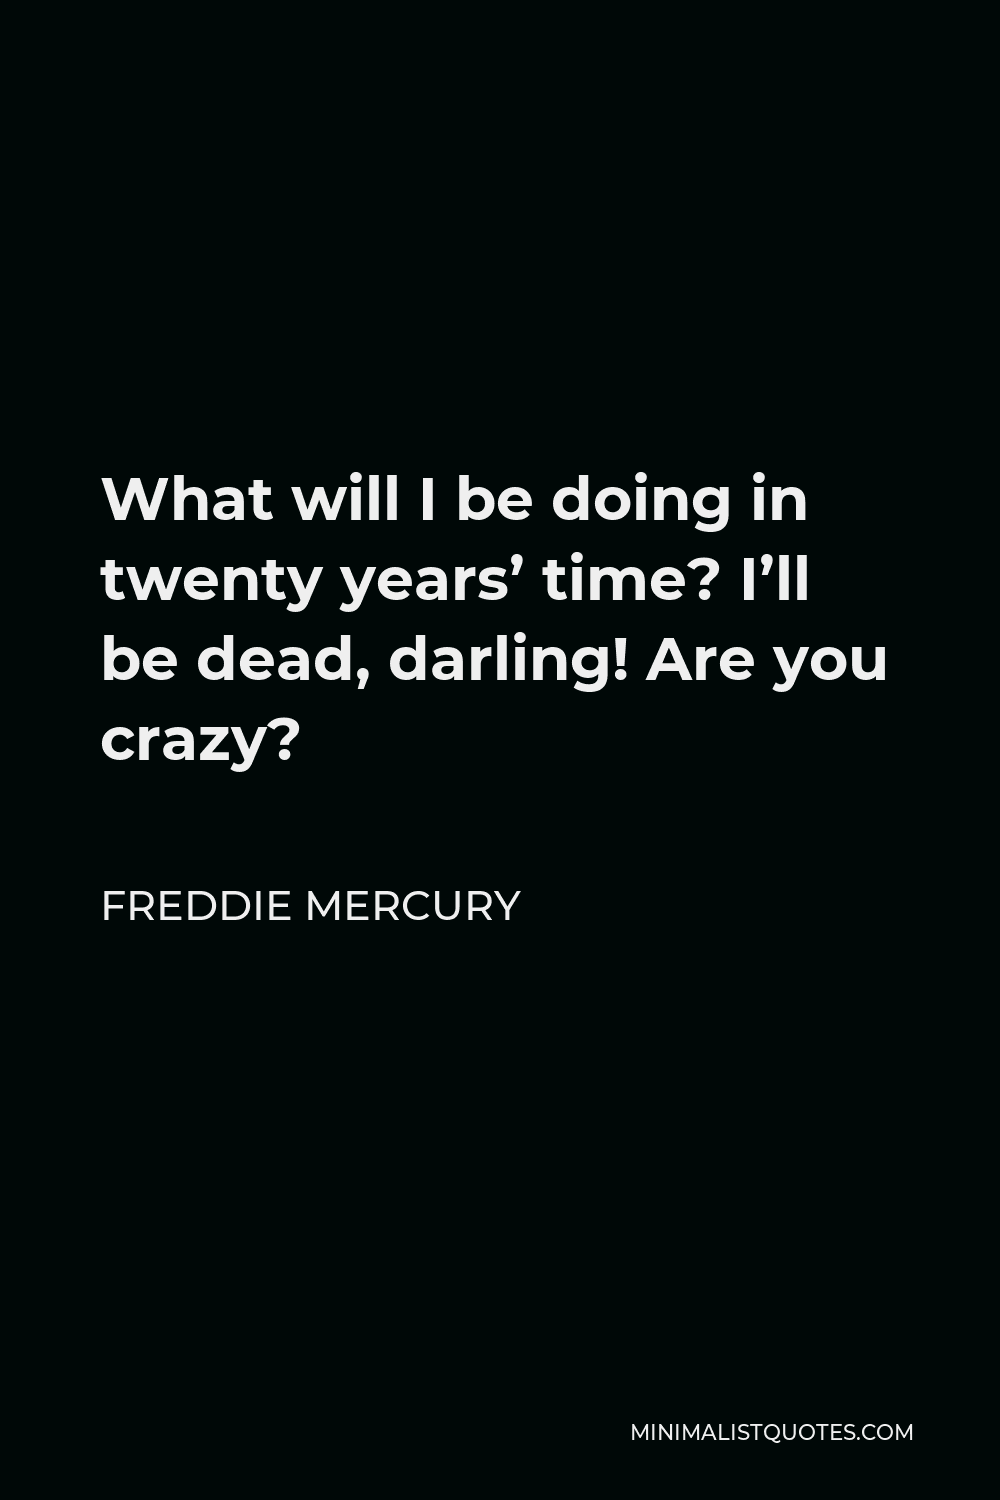 Freddie Mercury Quote - What will I be doing in twenty years' time? I'll be dead, darling! Are you crazy?